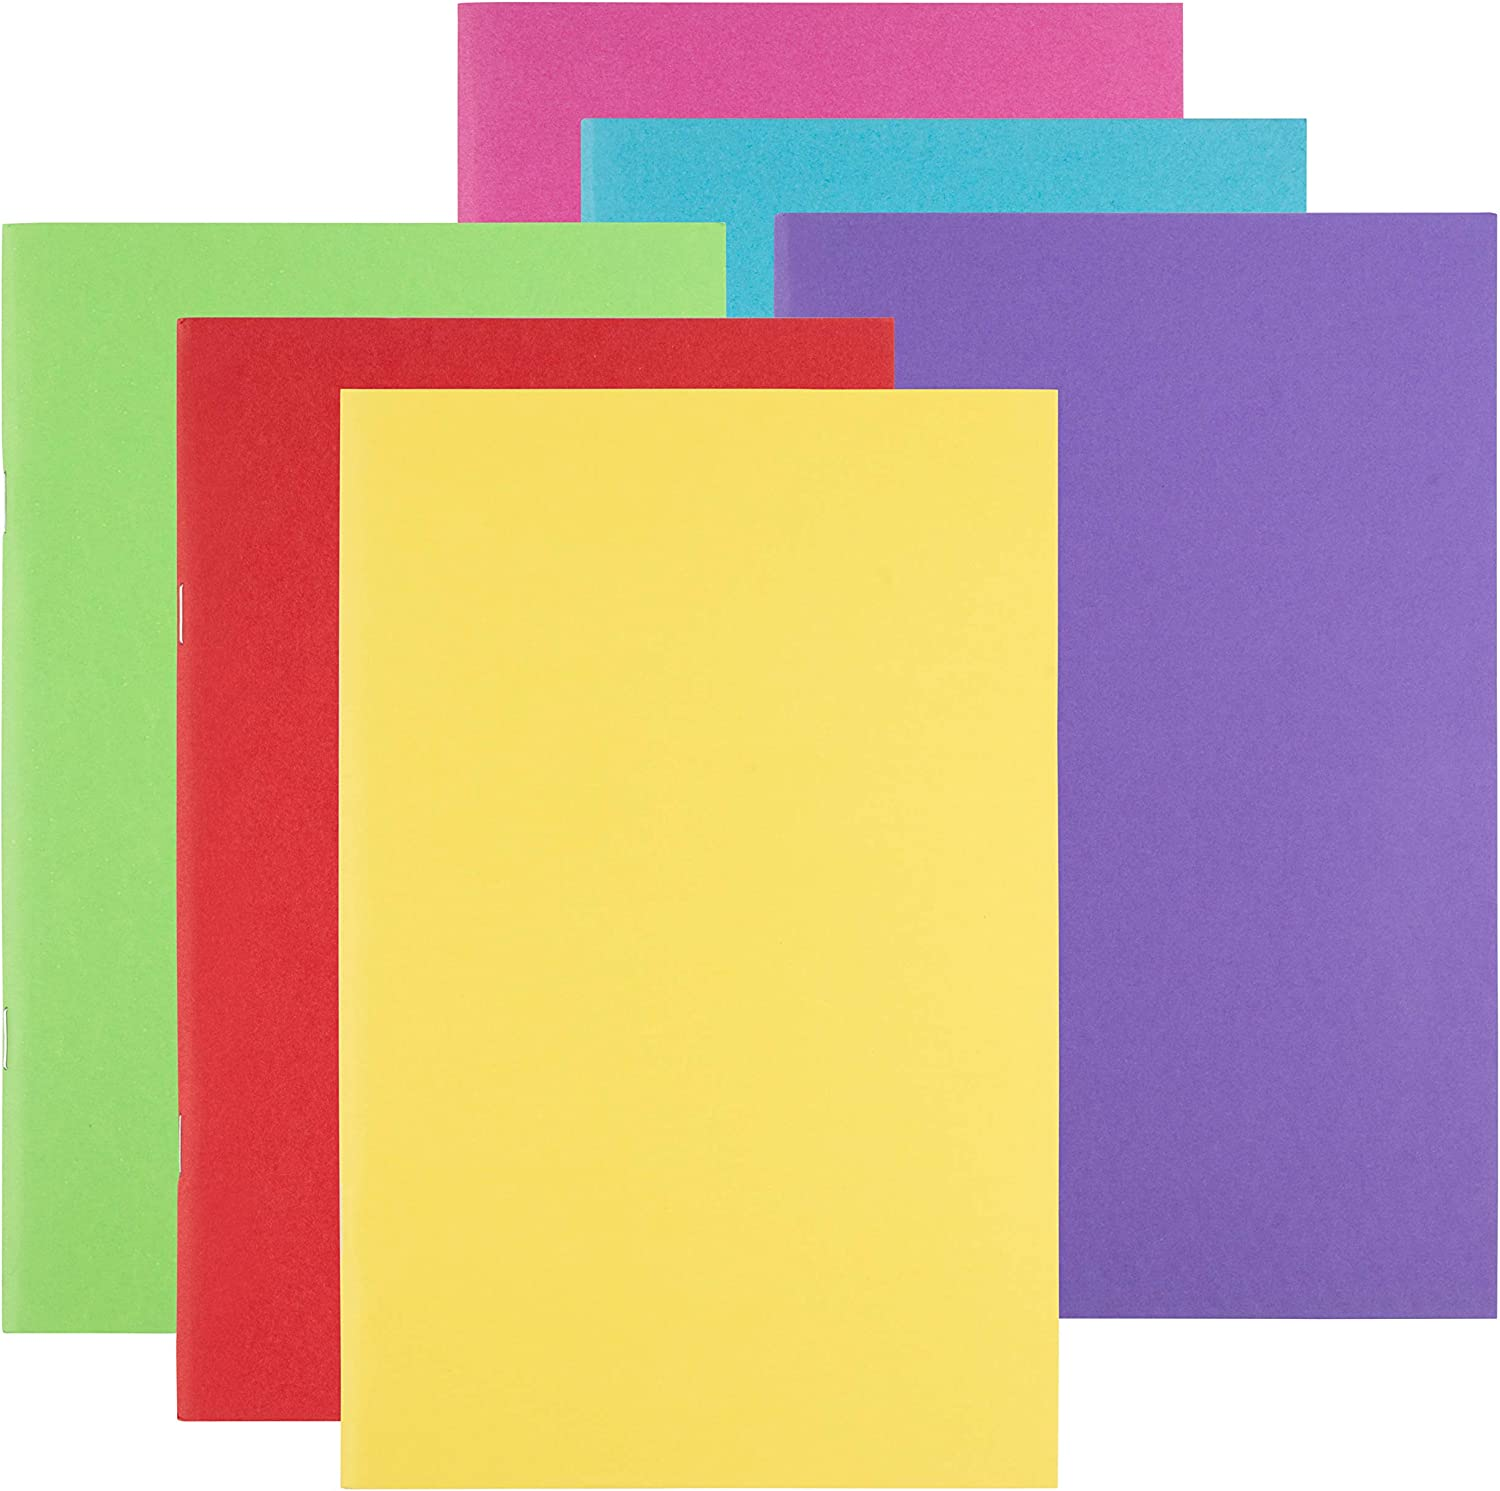 Paper Notebook Journals for Students 5.5 x 8.5 Inches, 24-Pack 6 Colors